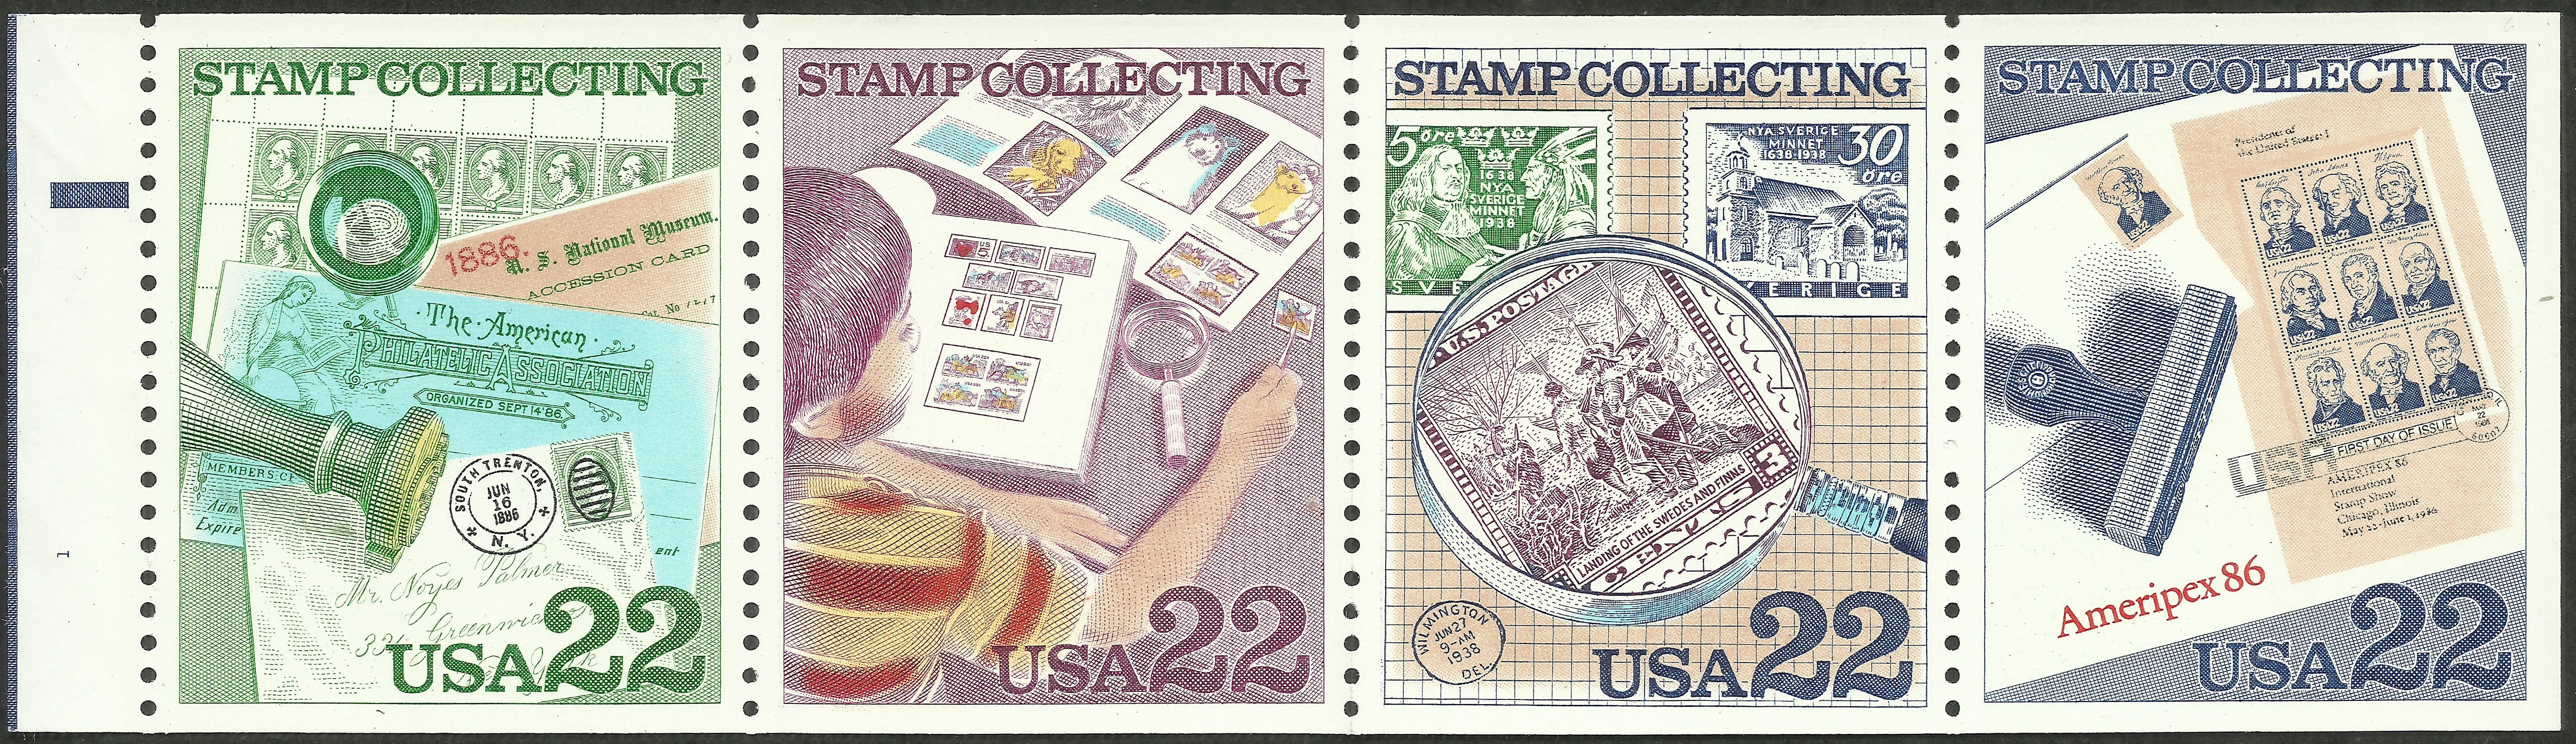 United States - Scott #2201a (1986) booklet pane of four